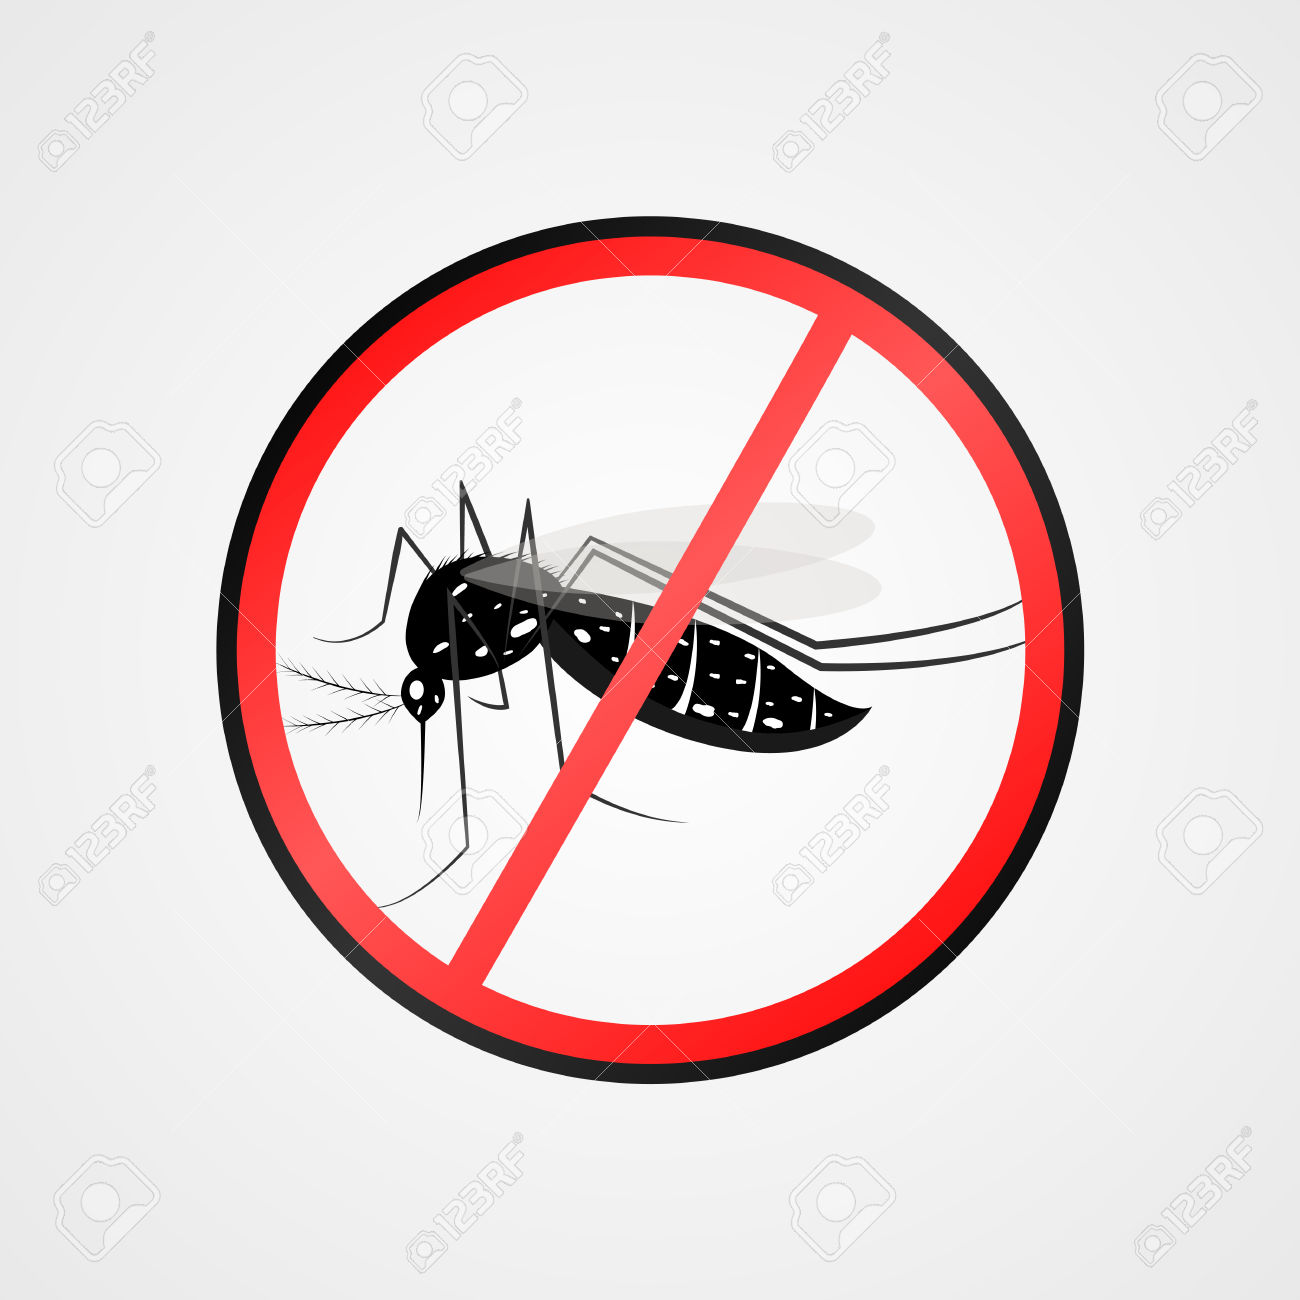 Anti Mosquito Symbol.Mosquito Warning Sign.Mosquitoes Carry Many.